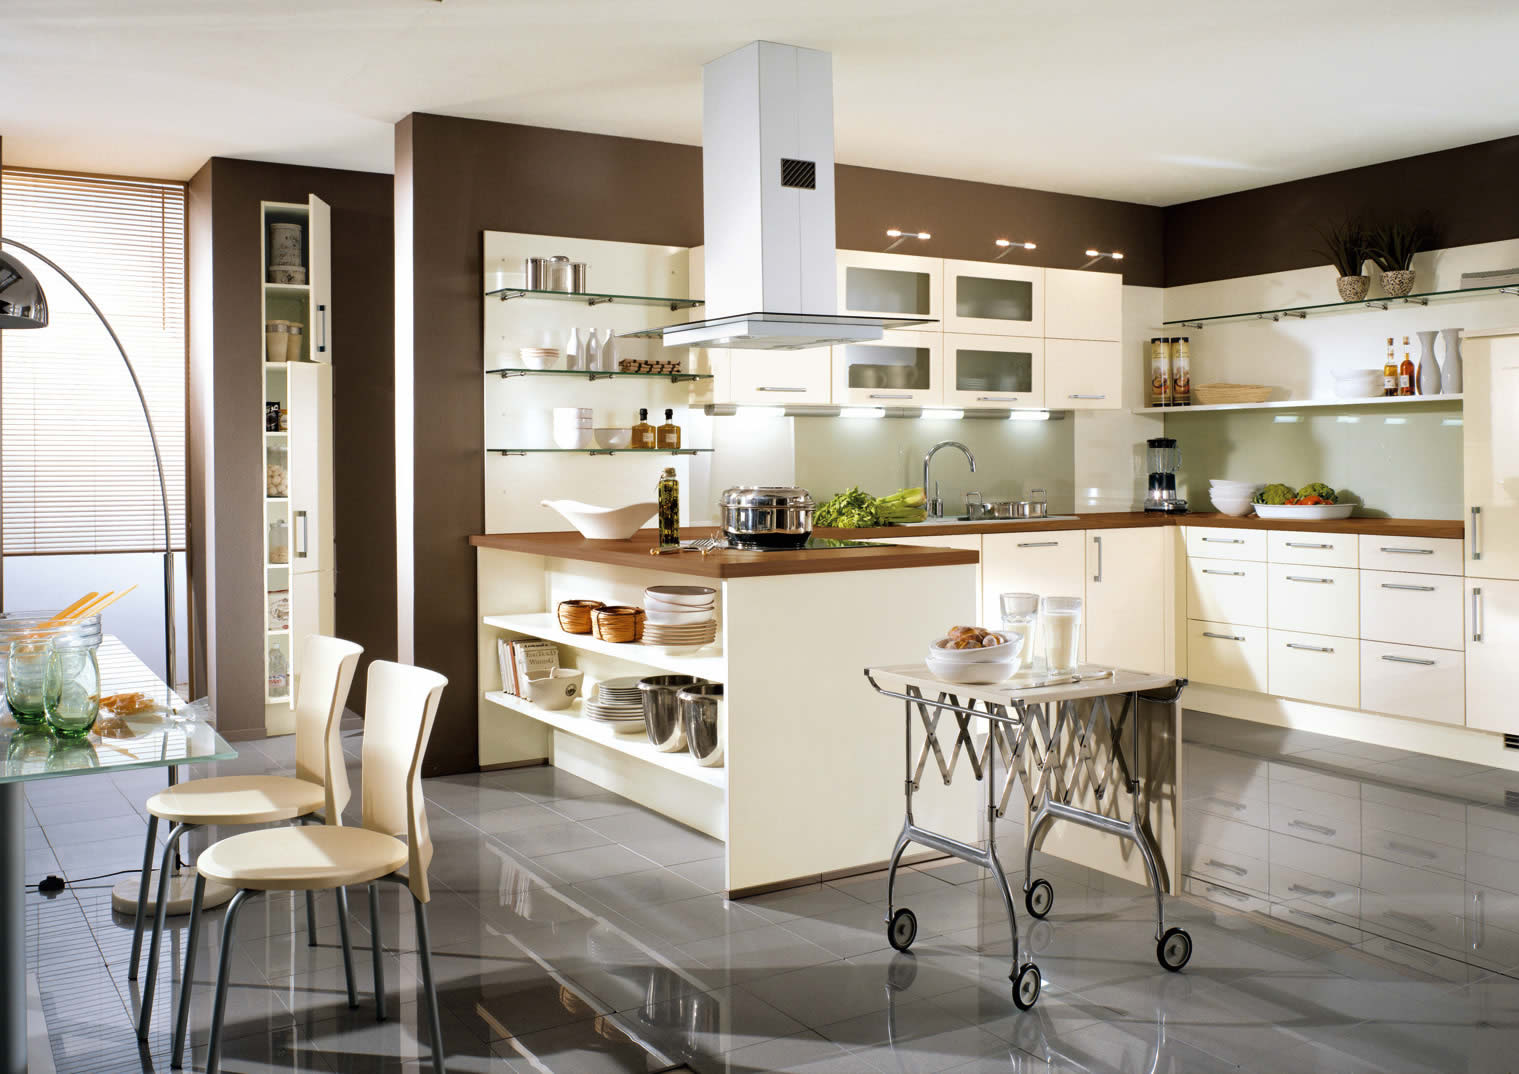 Kitchen Ideas Gloss cream and brown kitchen designs home design regarding kitchen